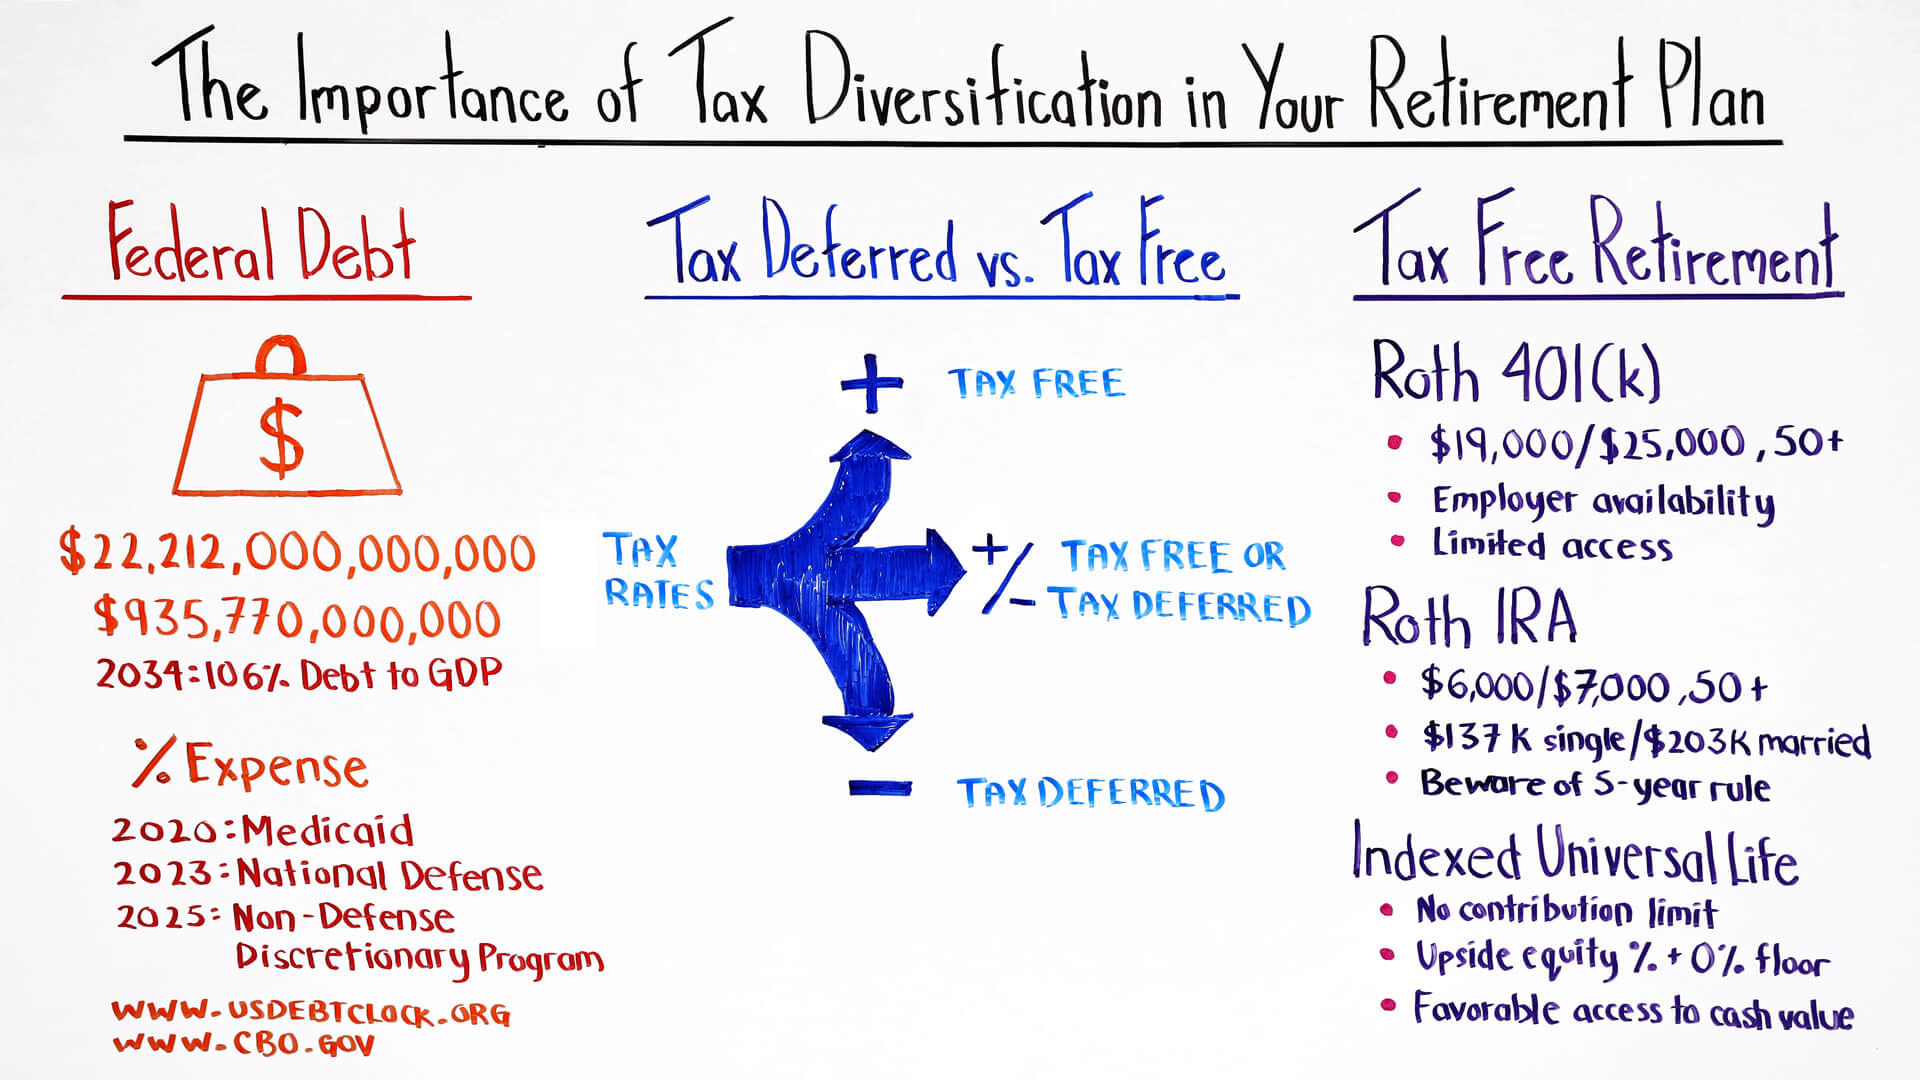 the importance of tax diversification in your retirement plan